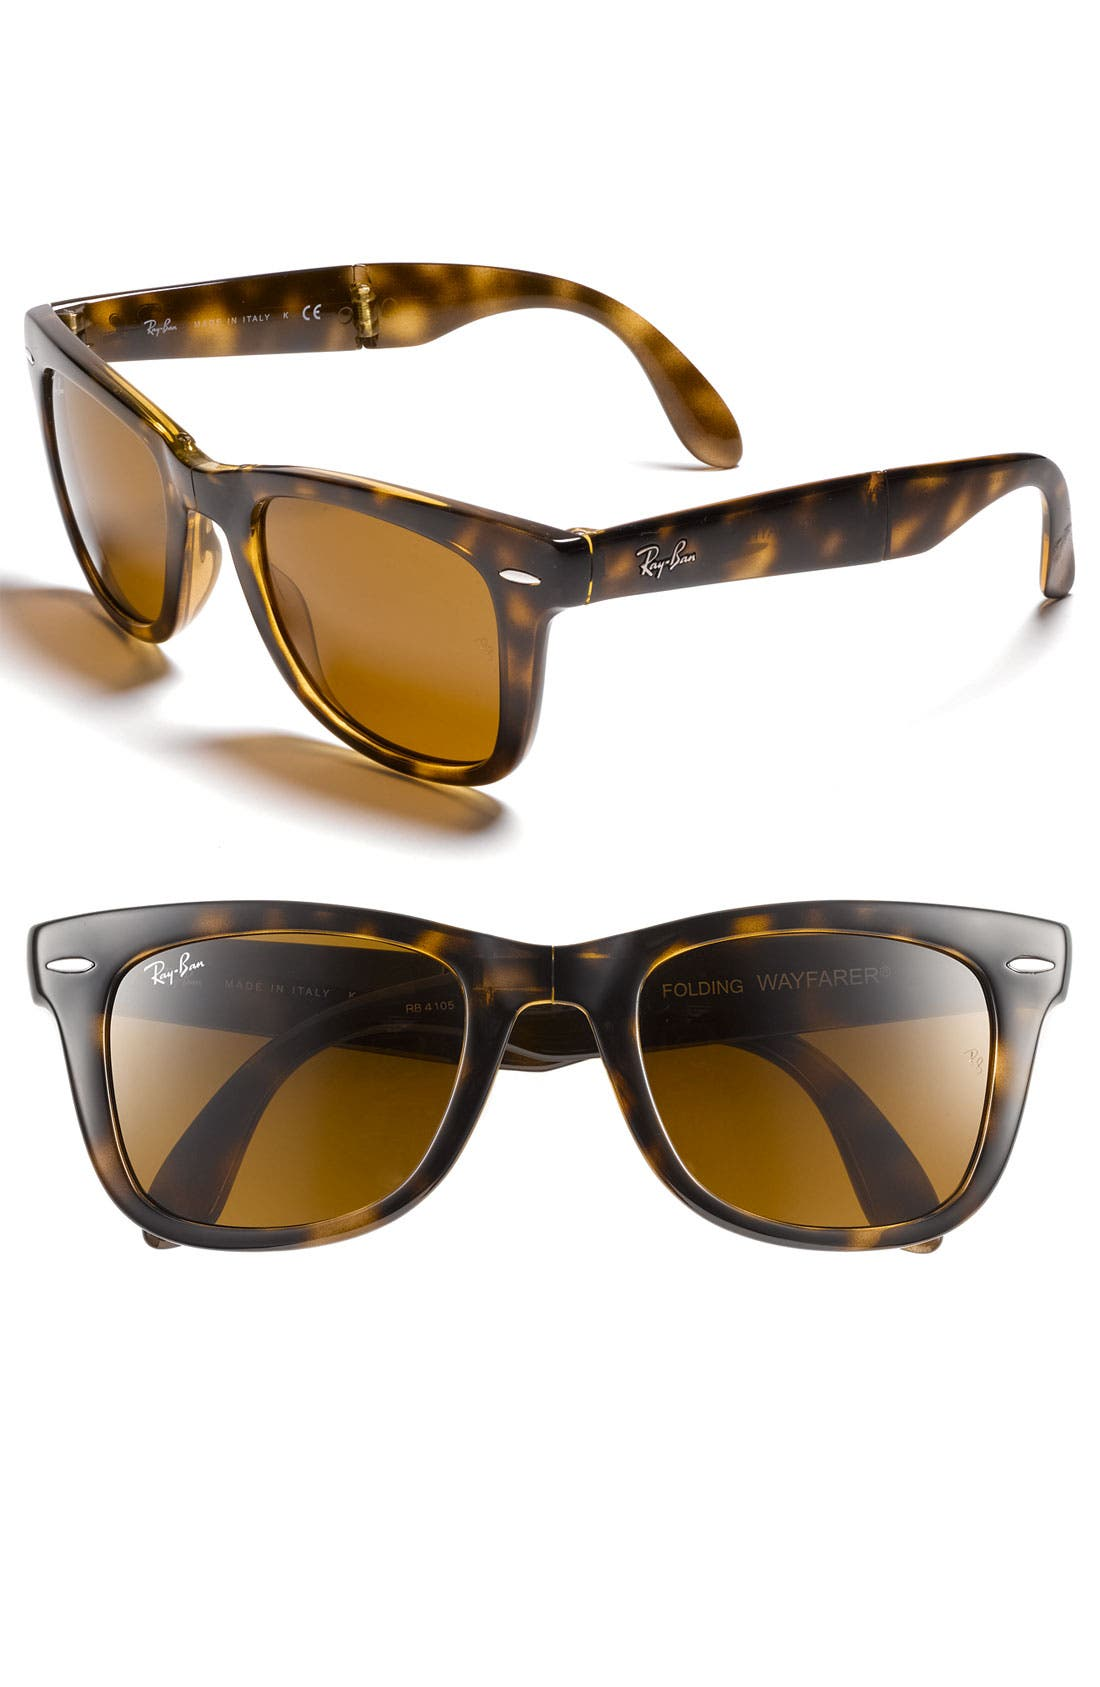 Alternate Image 1 Selected - Ray-Ban Standard 50mm Folding Wayfarer Sunglasses